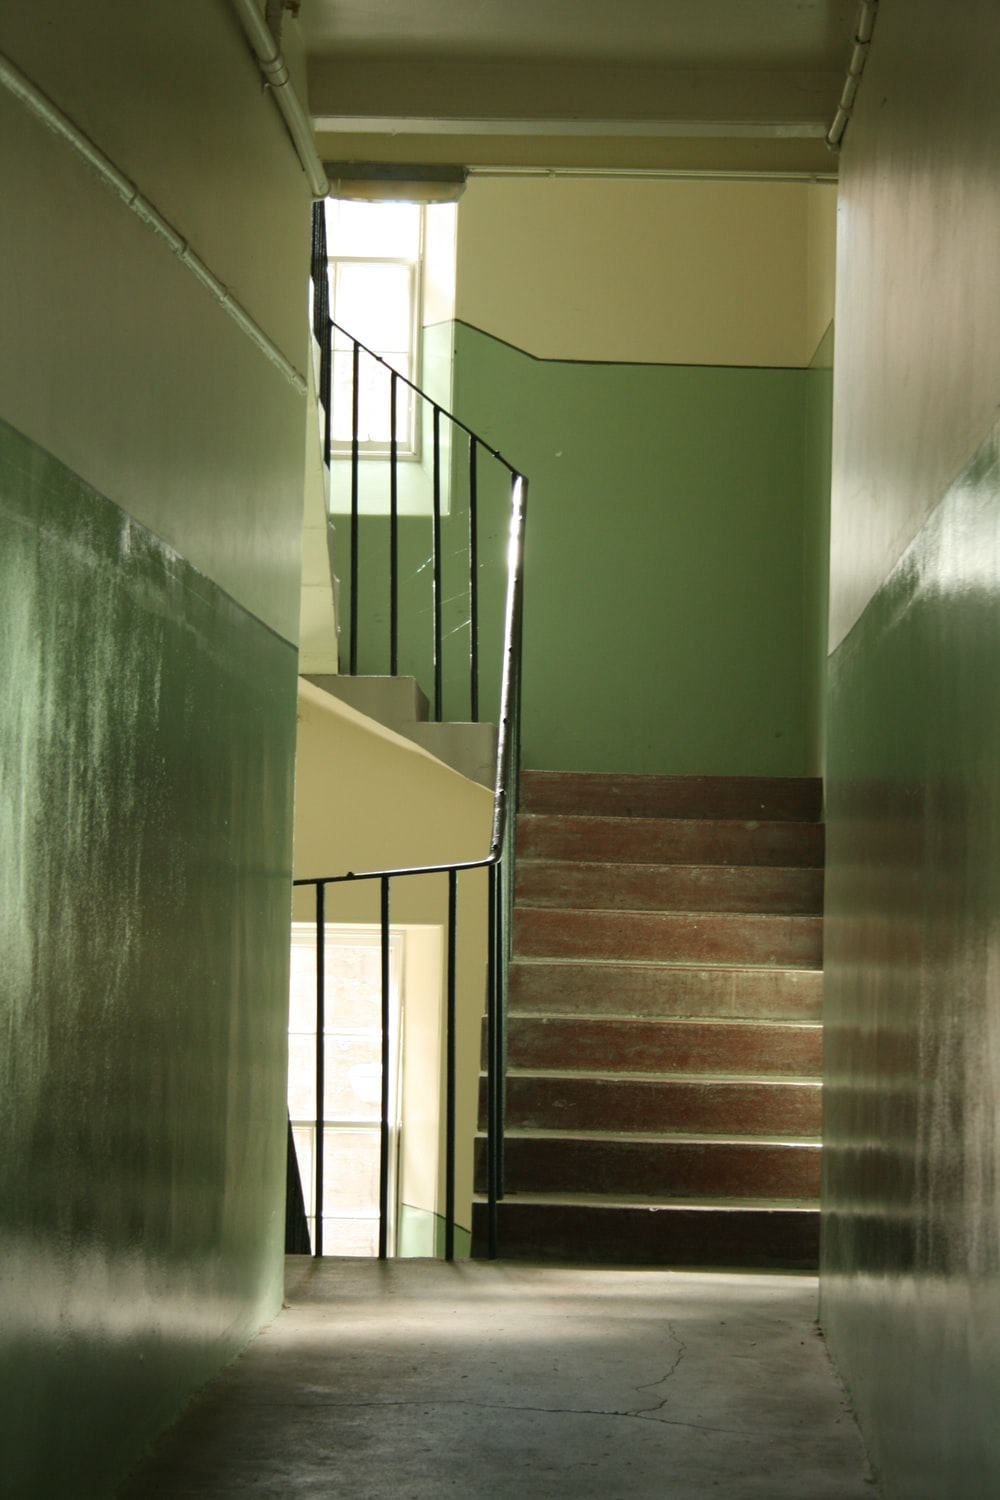 green and yellow concrete staircase